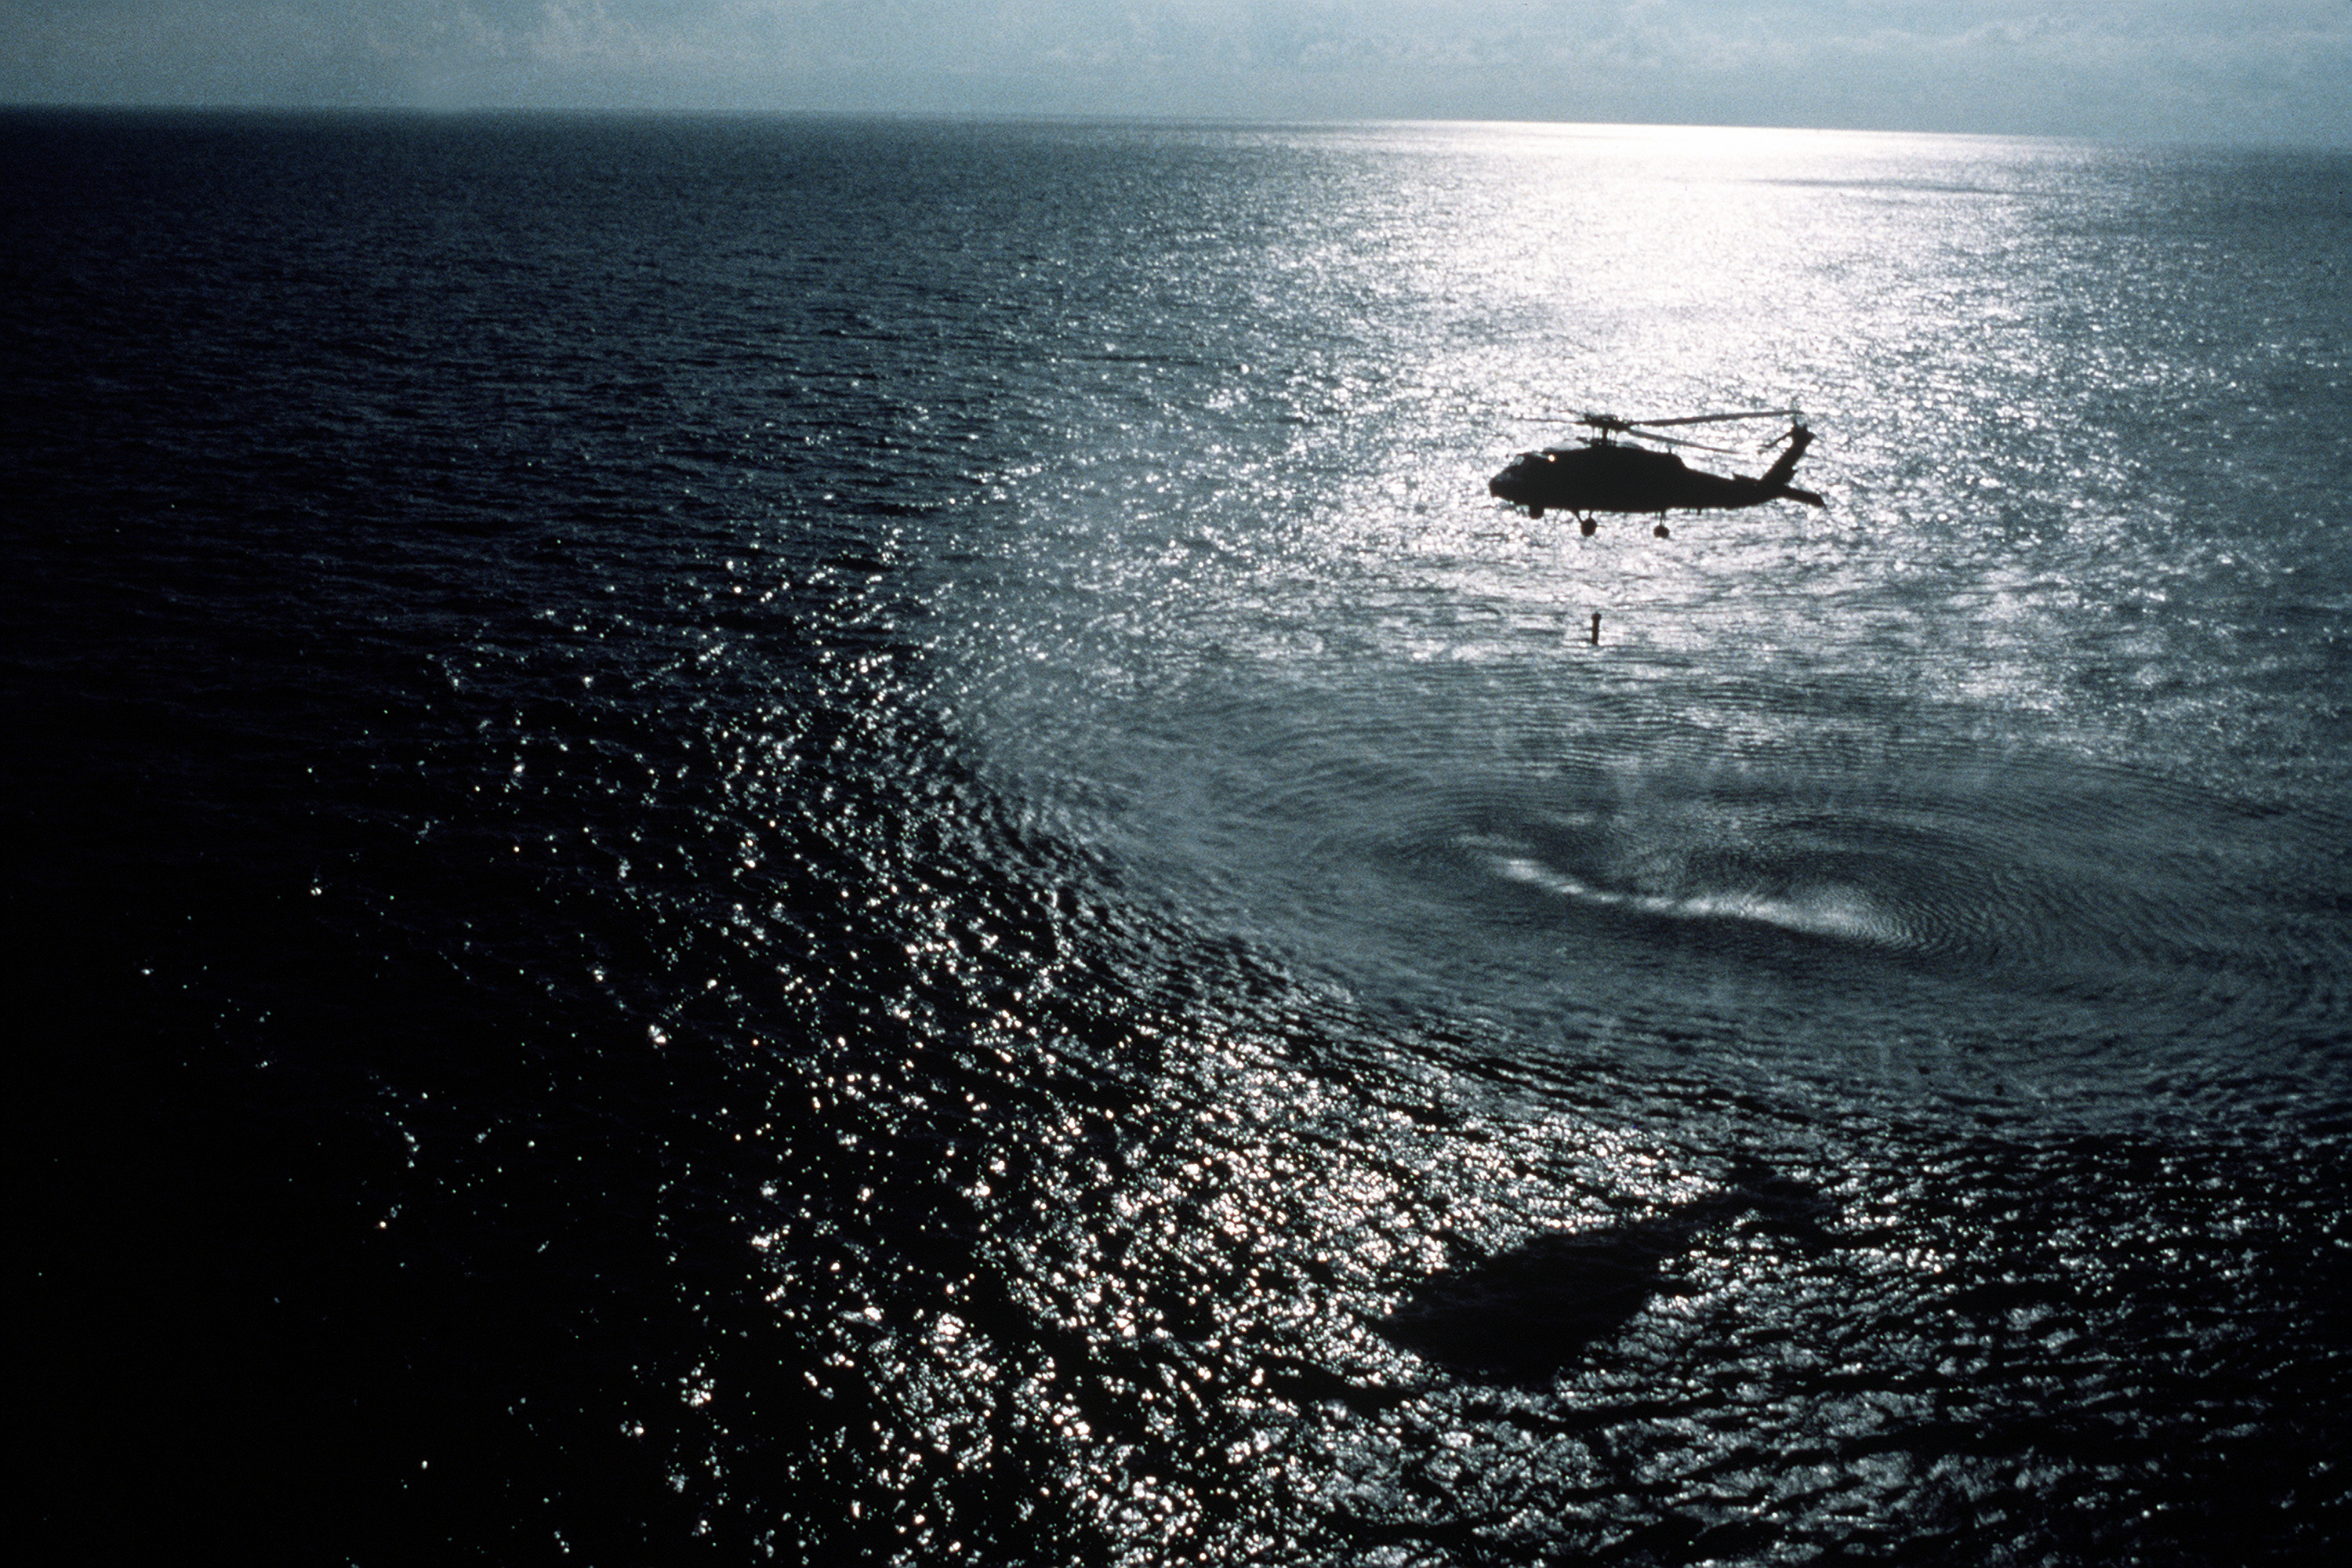 An SH-60F Seahawk helicopter lowers a dipping sonar detector during an anti-submarine warfare support operation